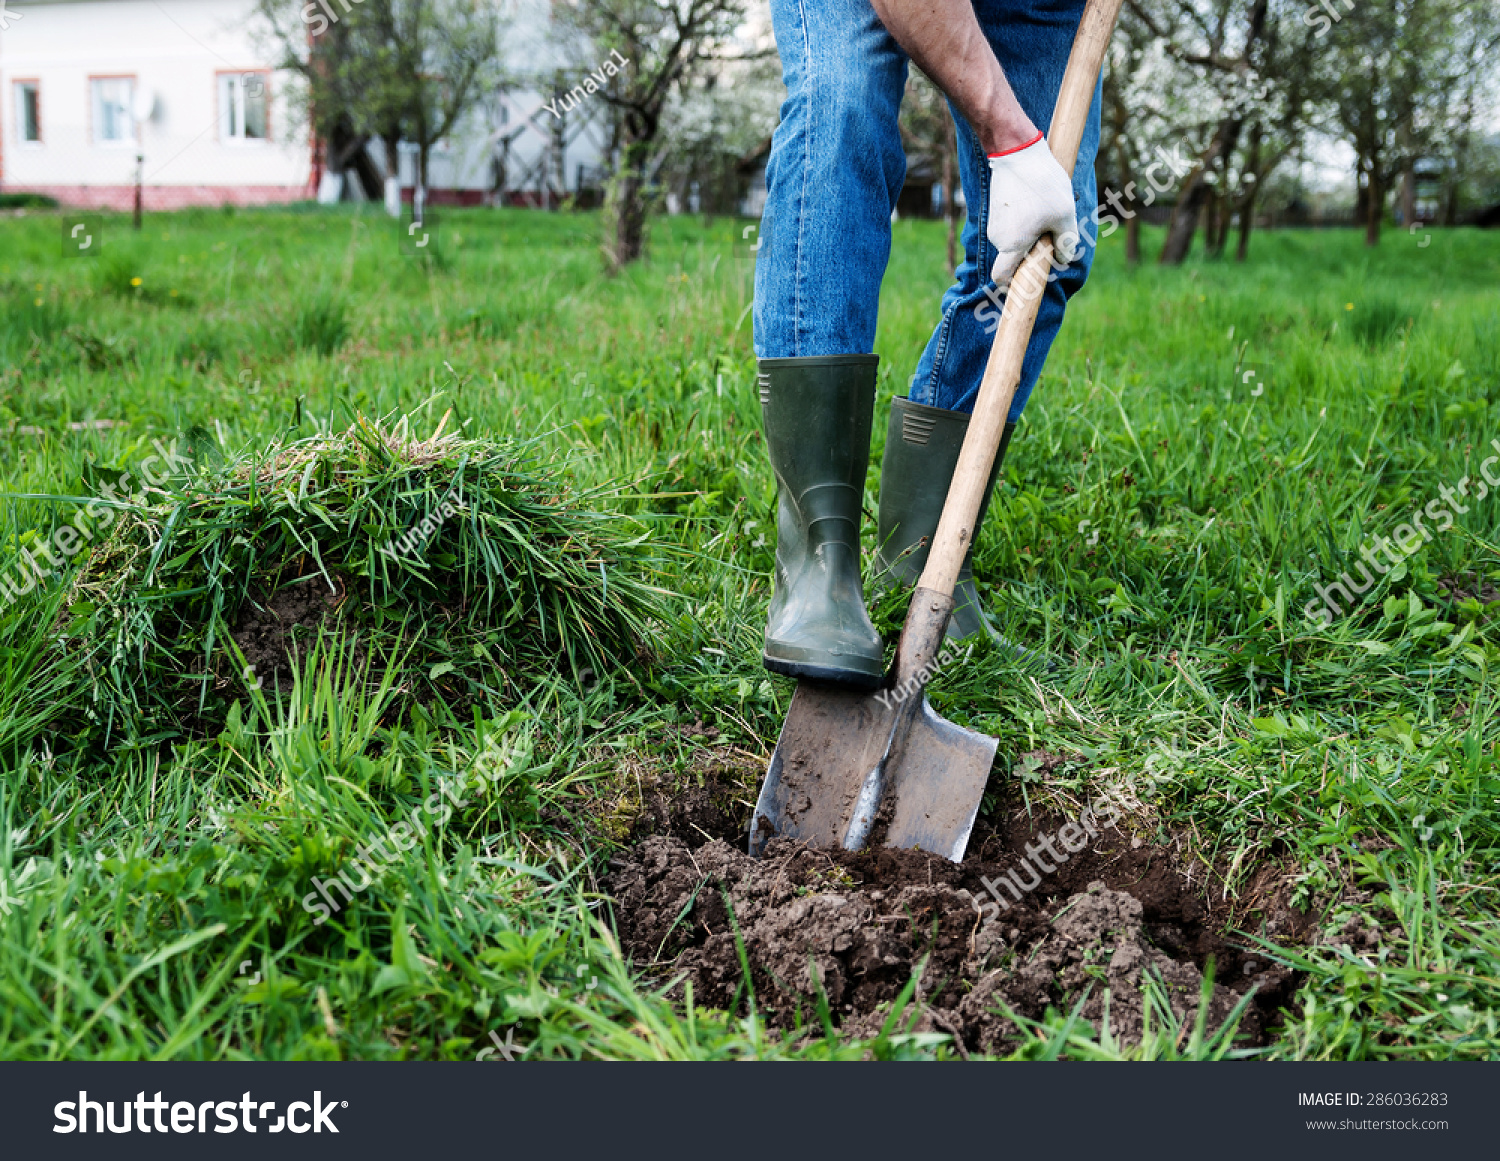 Man Digs Hole Ground Planting Trees Stock Photo 286036283 ...